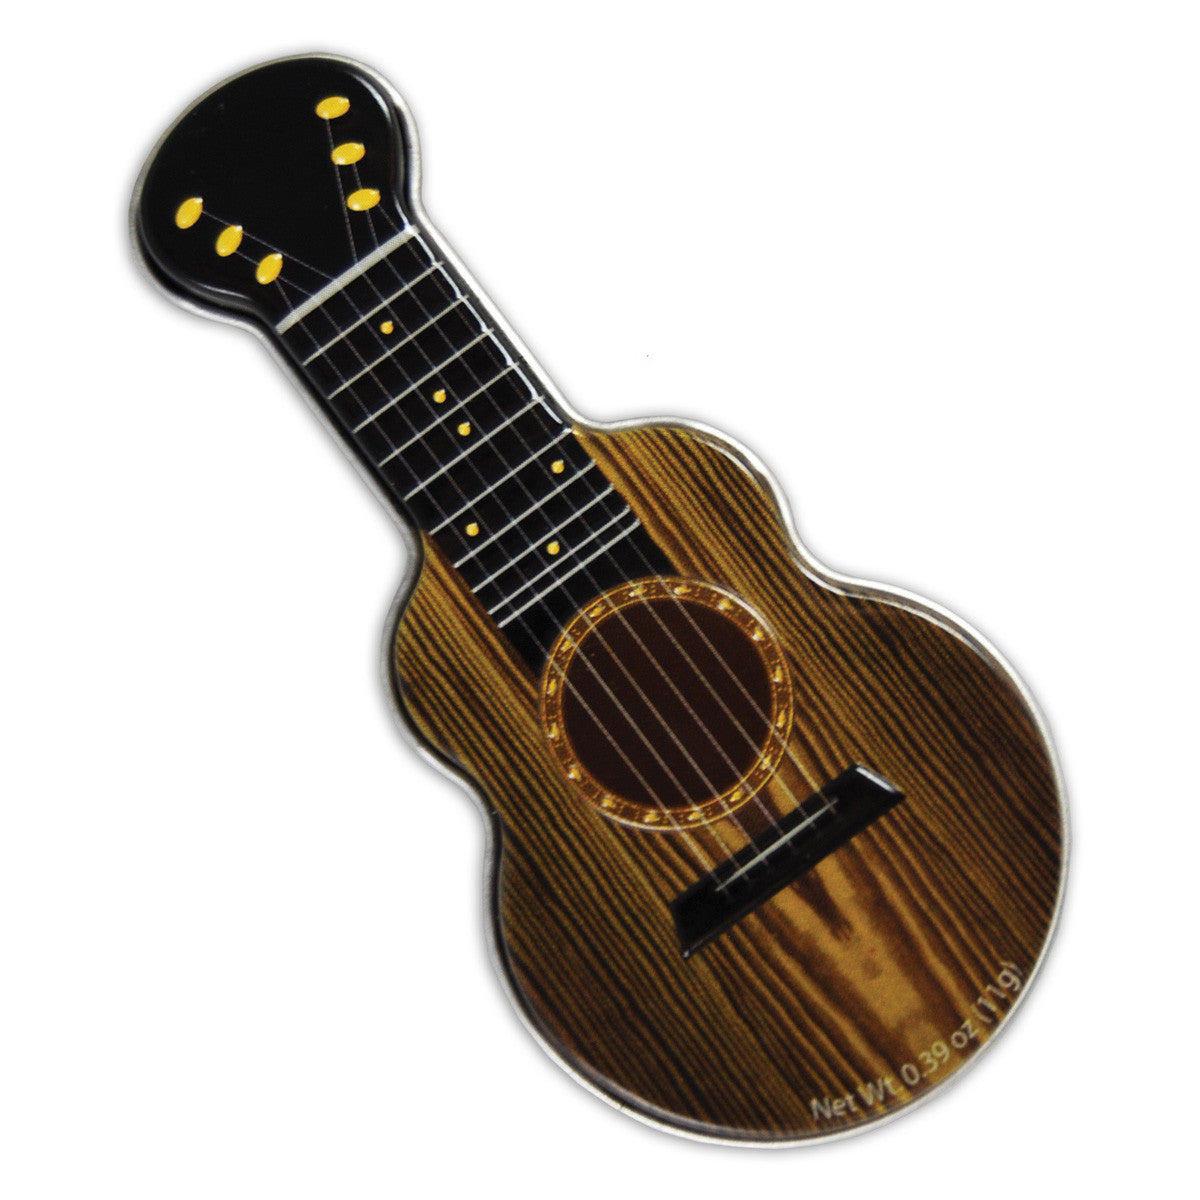 Woodgrain Acoustic Guitar Shaped Tin - MTR4039F